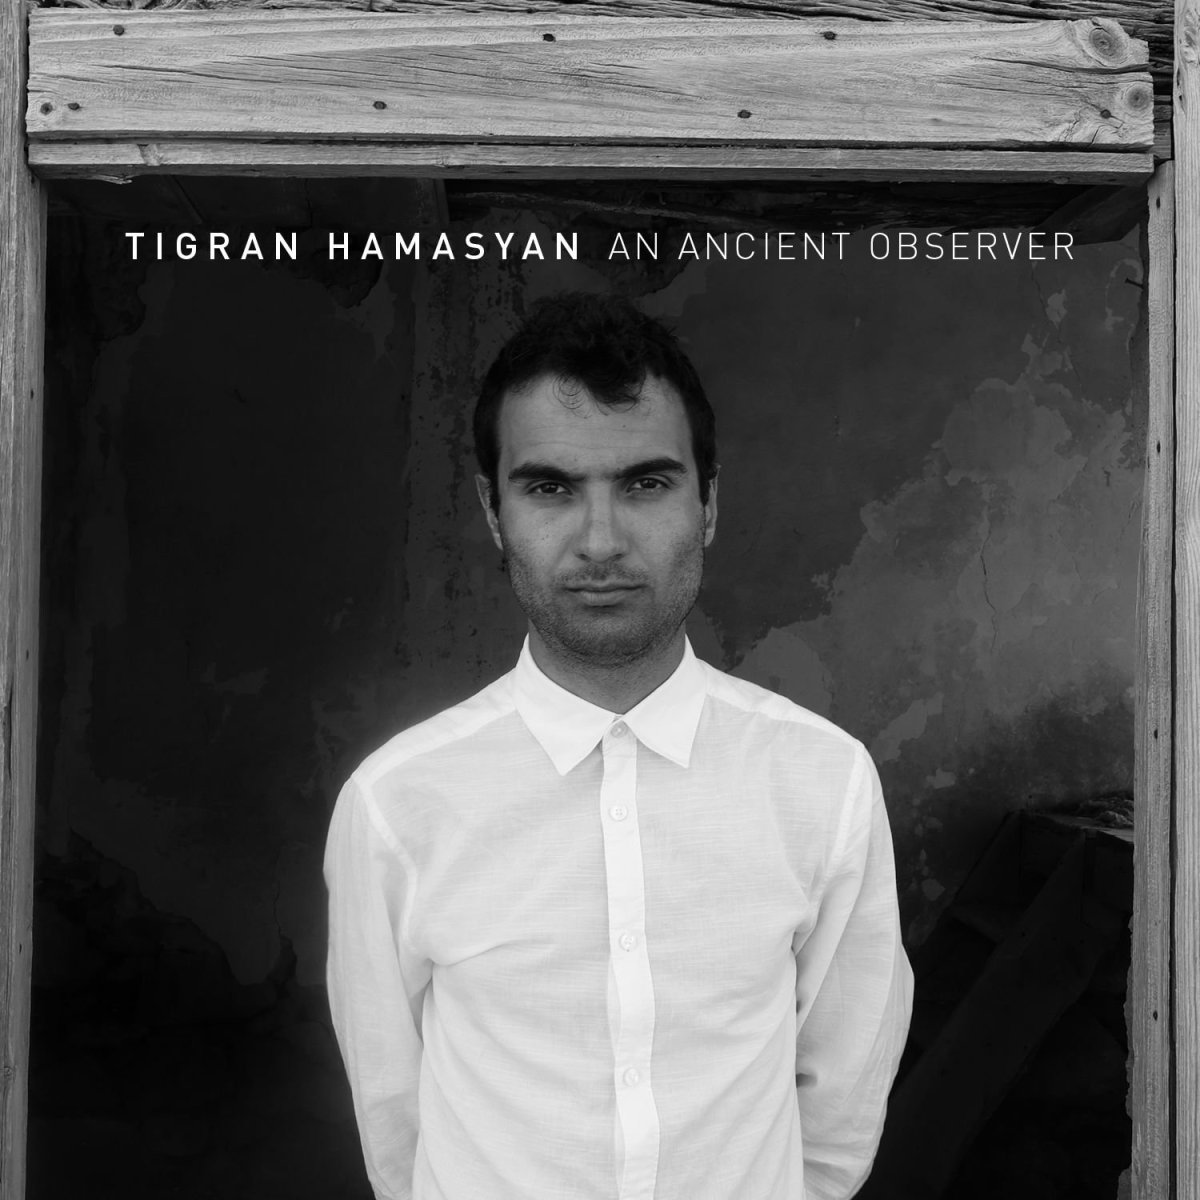 April 2017, Best Jazz Album: An Ancient Observer by Tigran Hamasyan